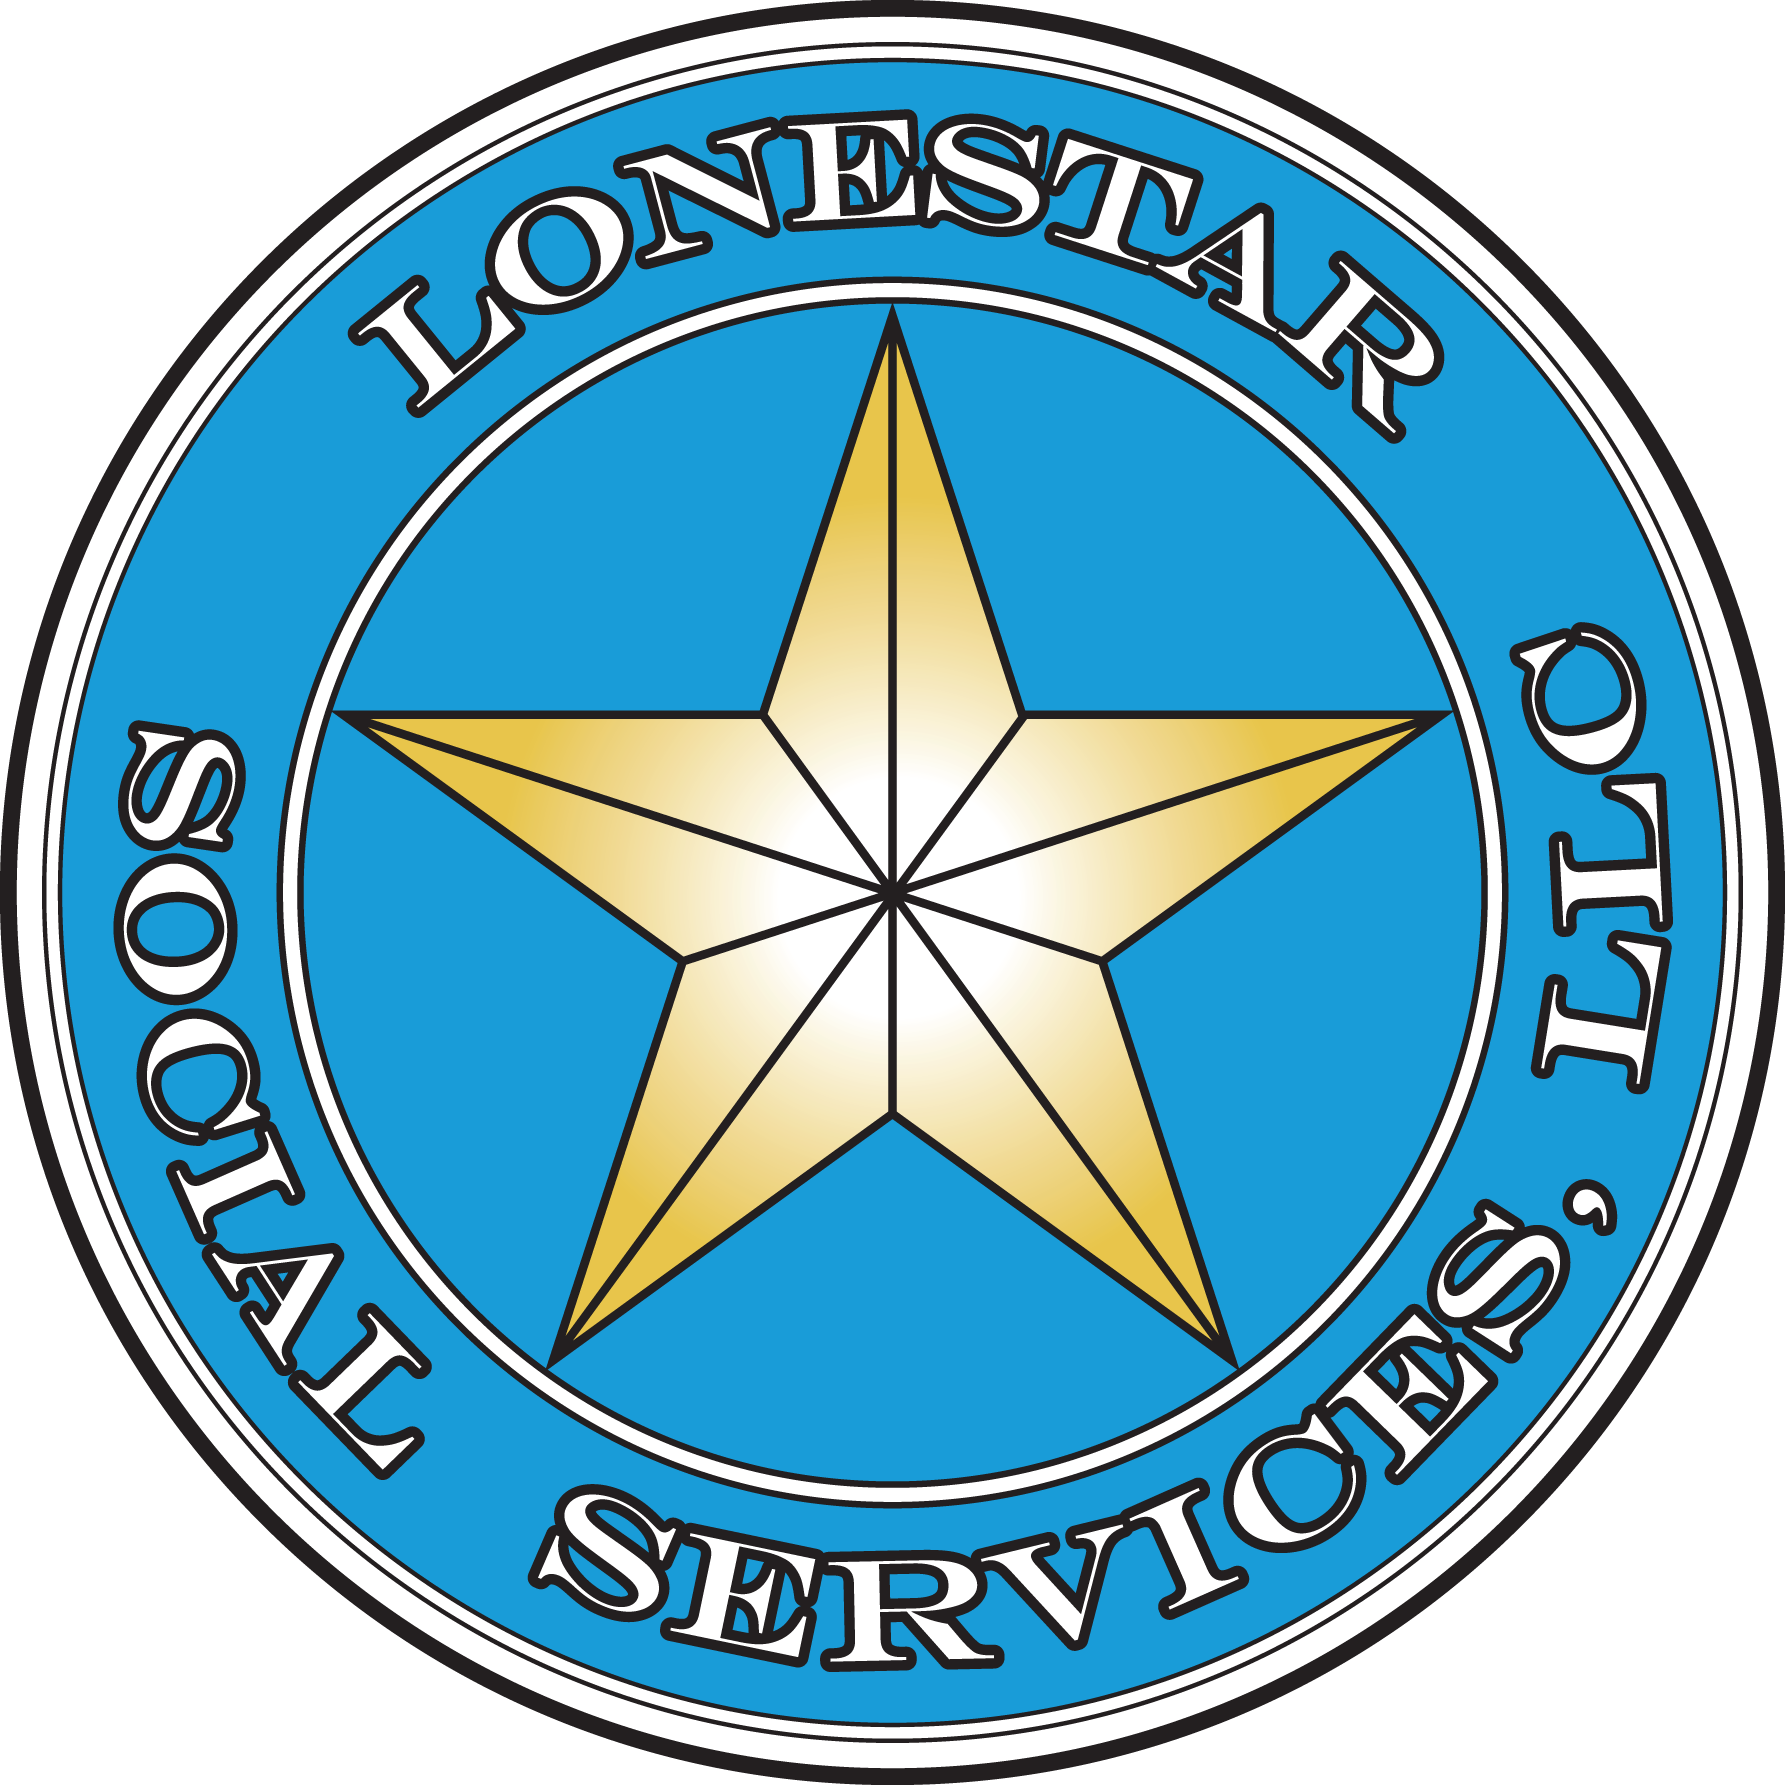 Adoption Agency, Texas | Lonestar Social Services